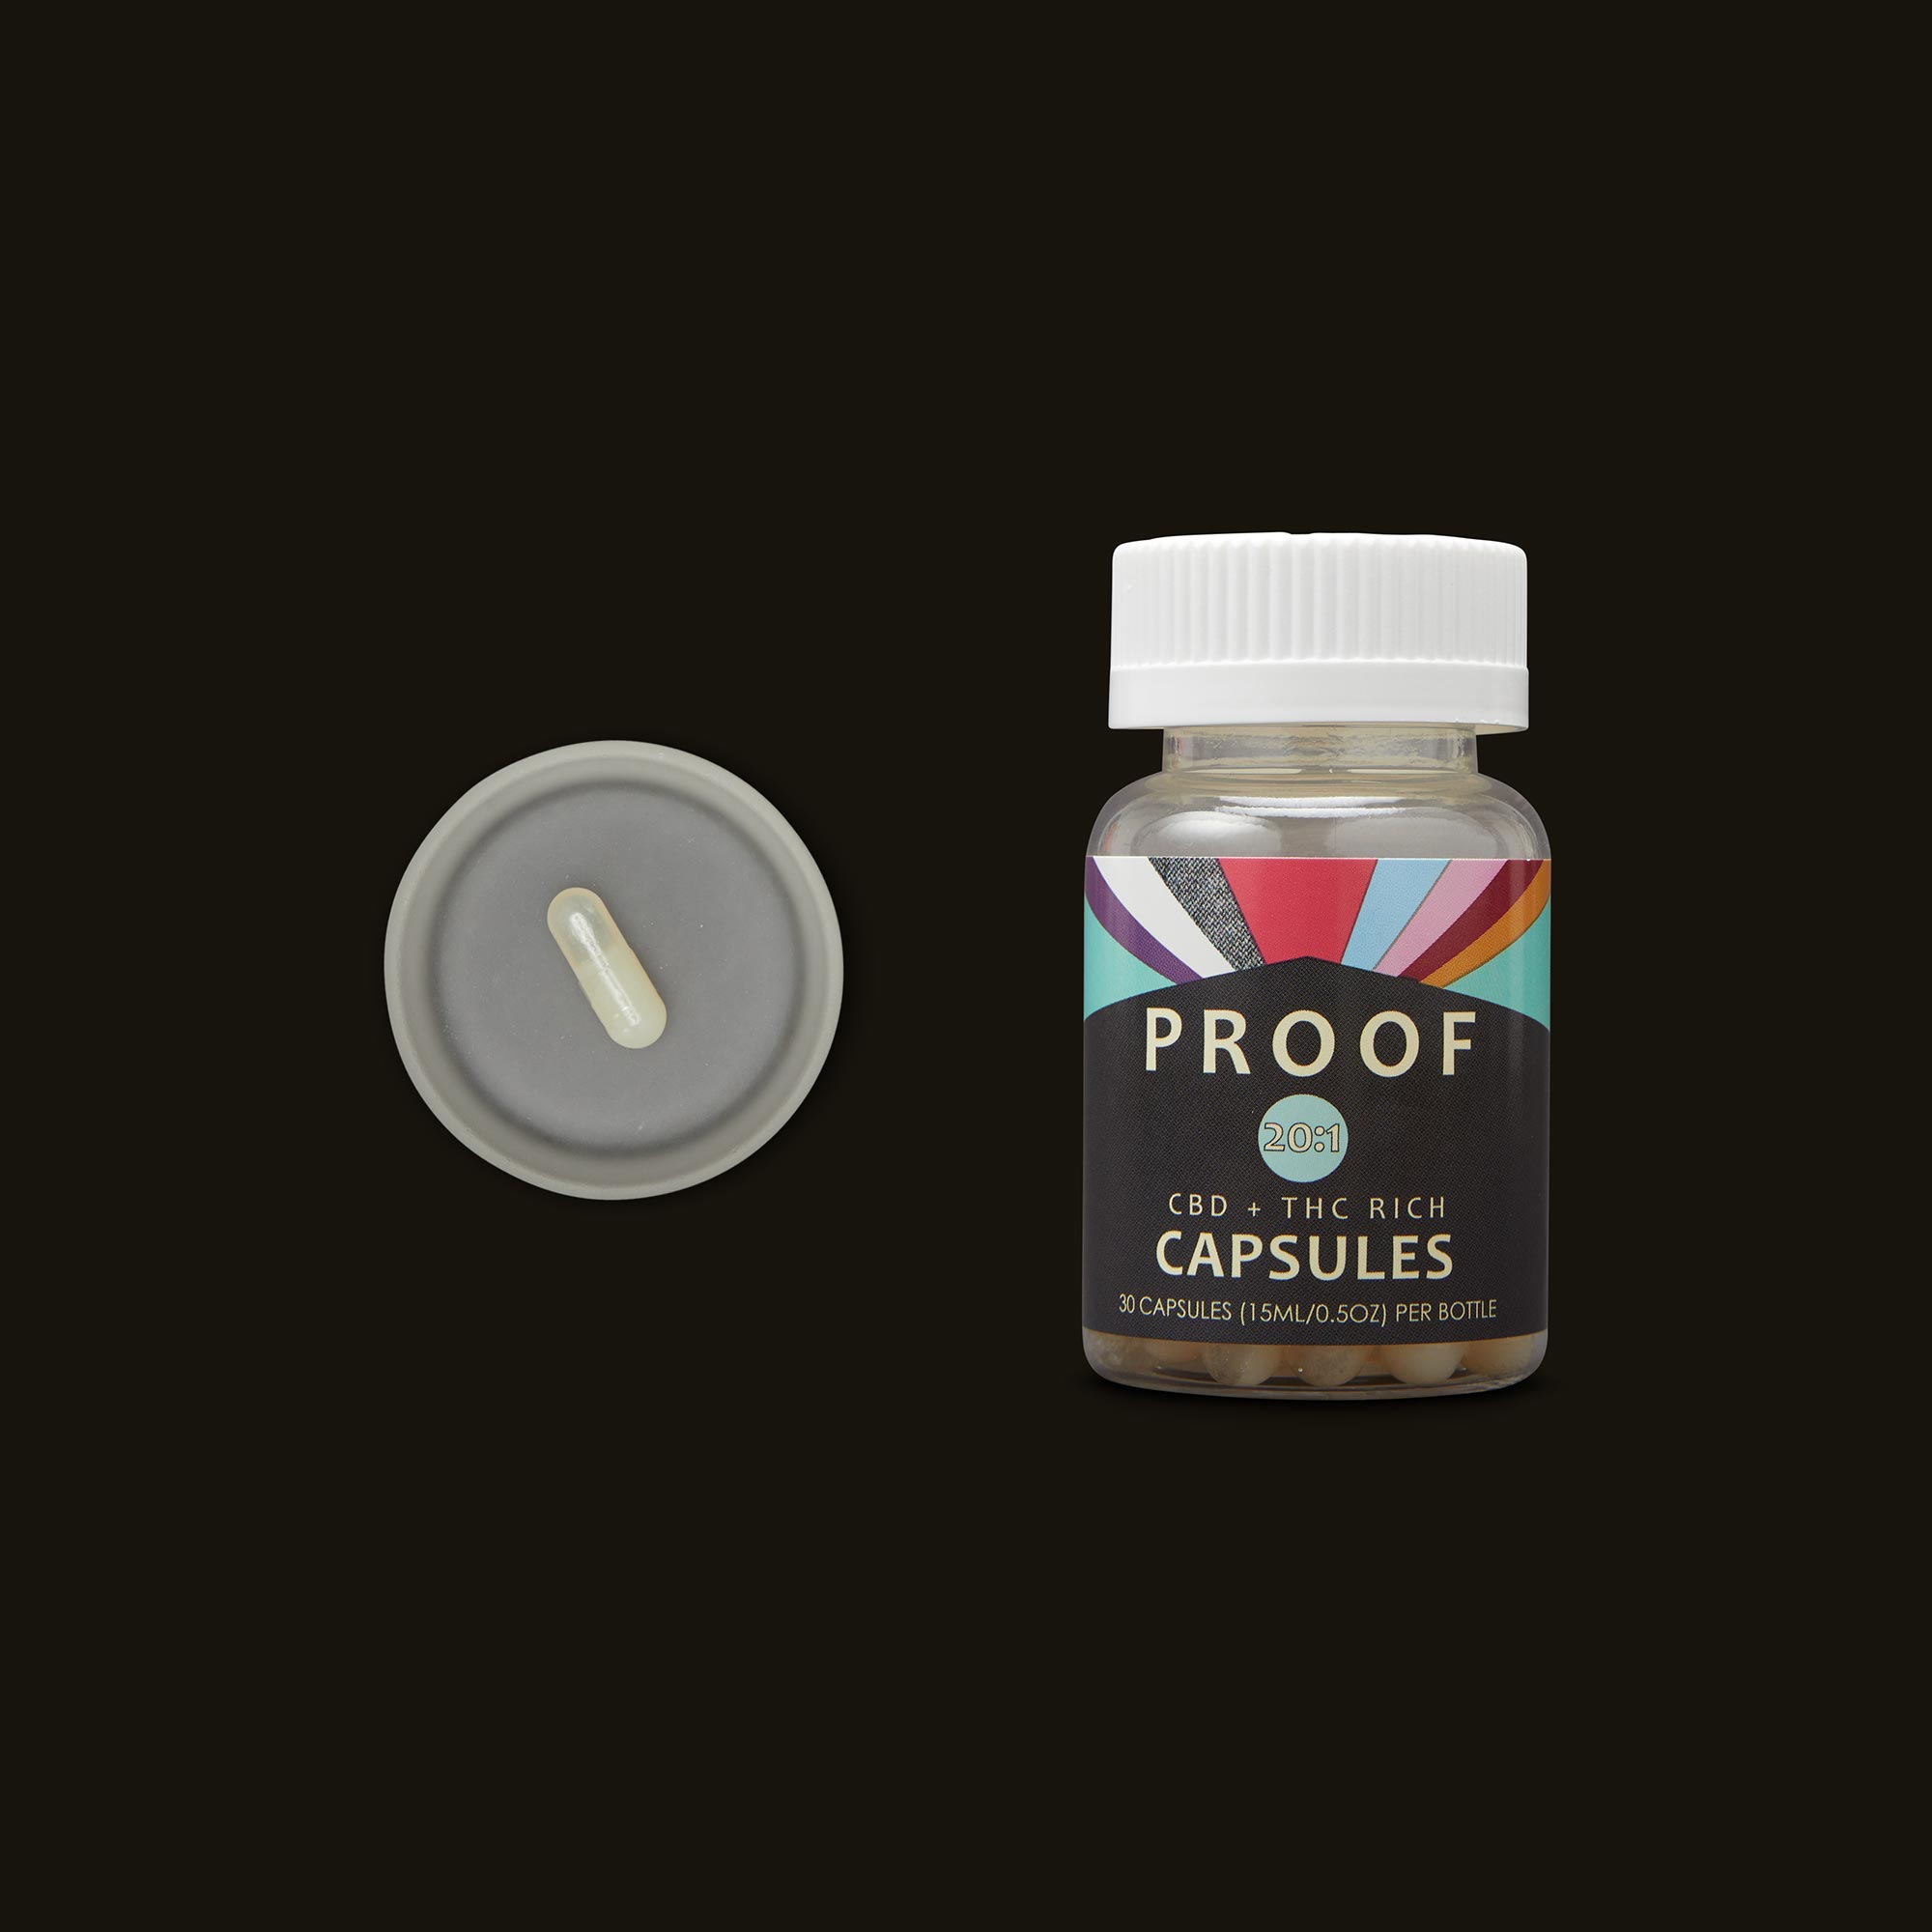 Proof 20:1 CBD:THC Capsules